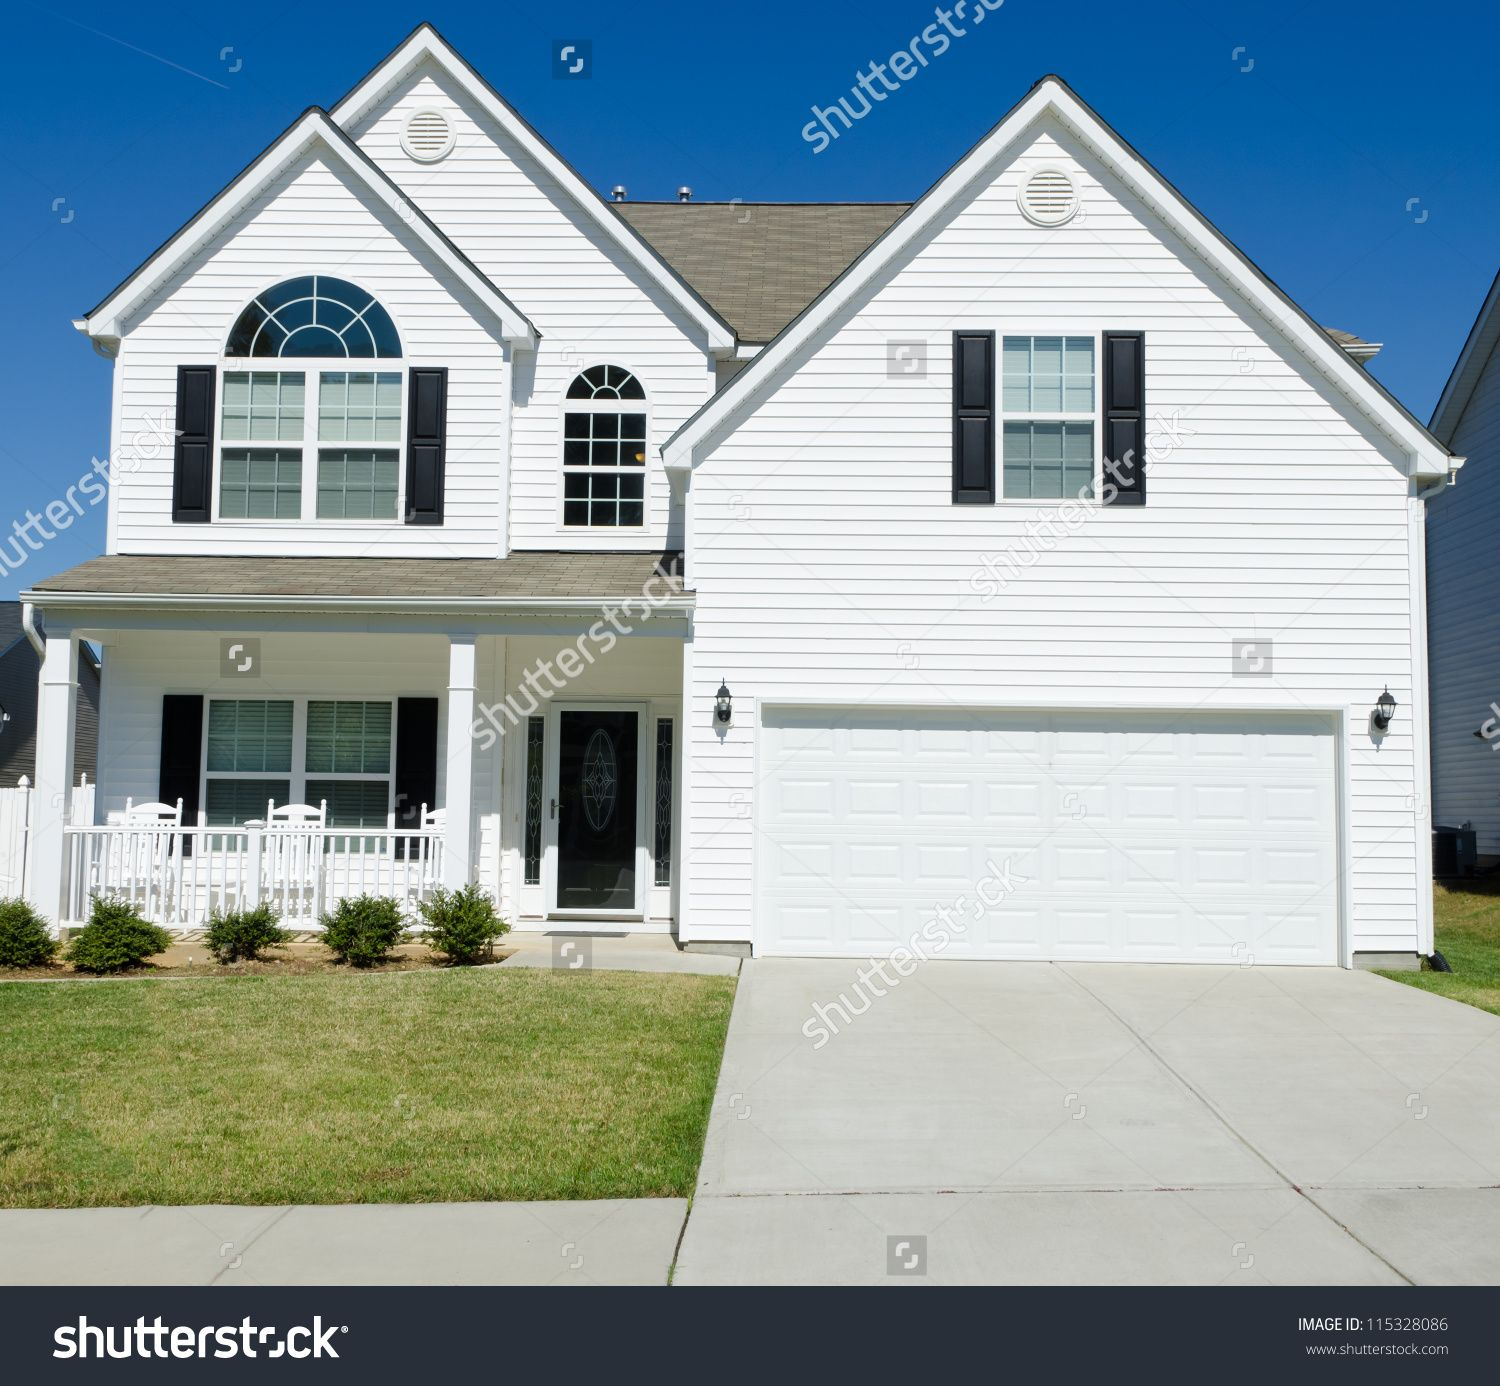 Residential House With White Vinyl Siding Part 57